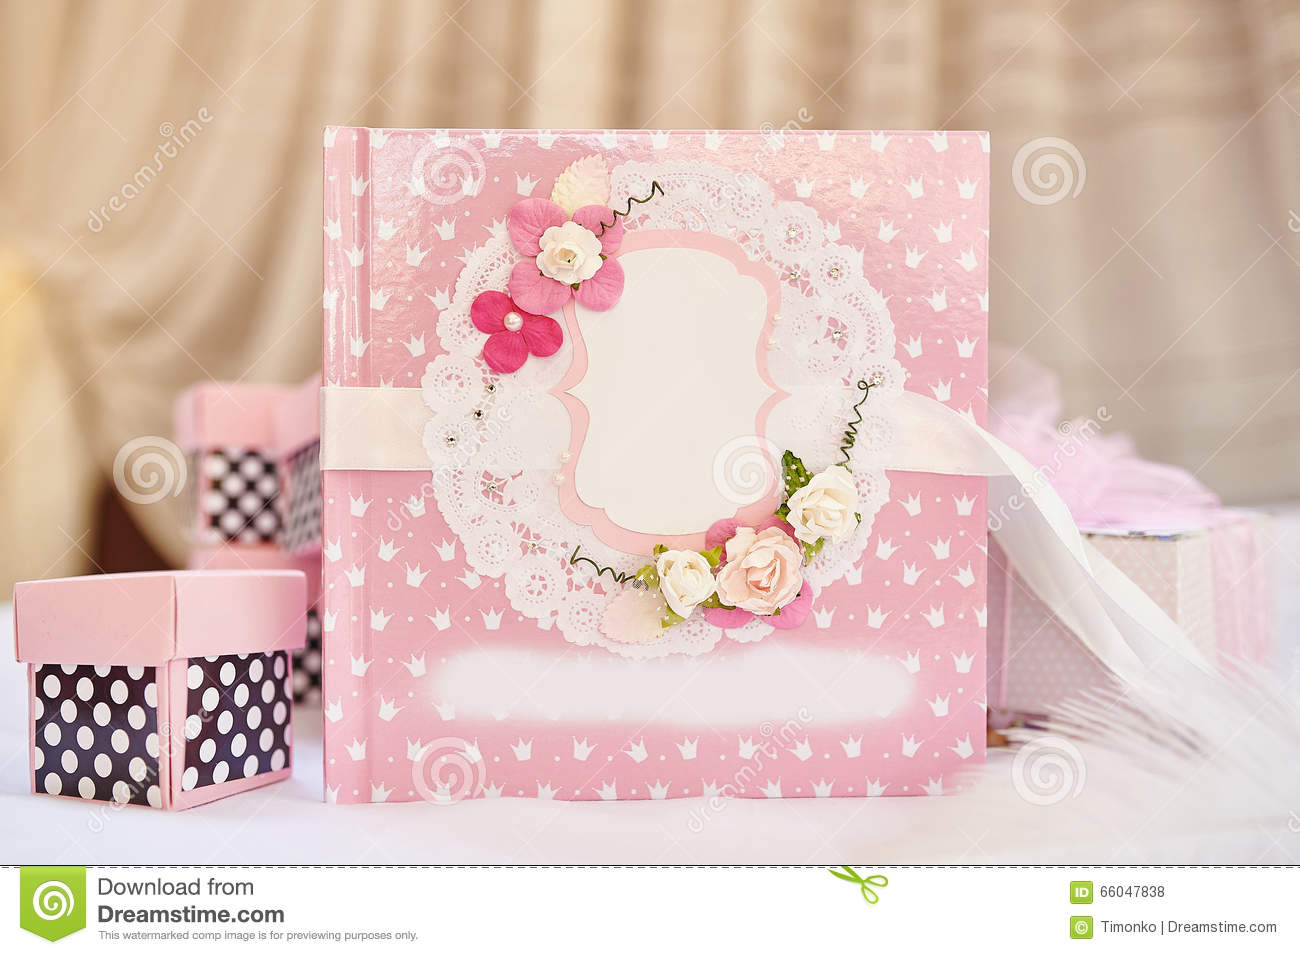 Beautiful Wedding Gifts: Book For The Newlyweds Congratulation And Beautiful